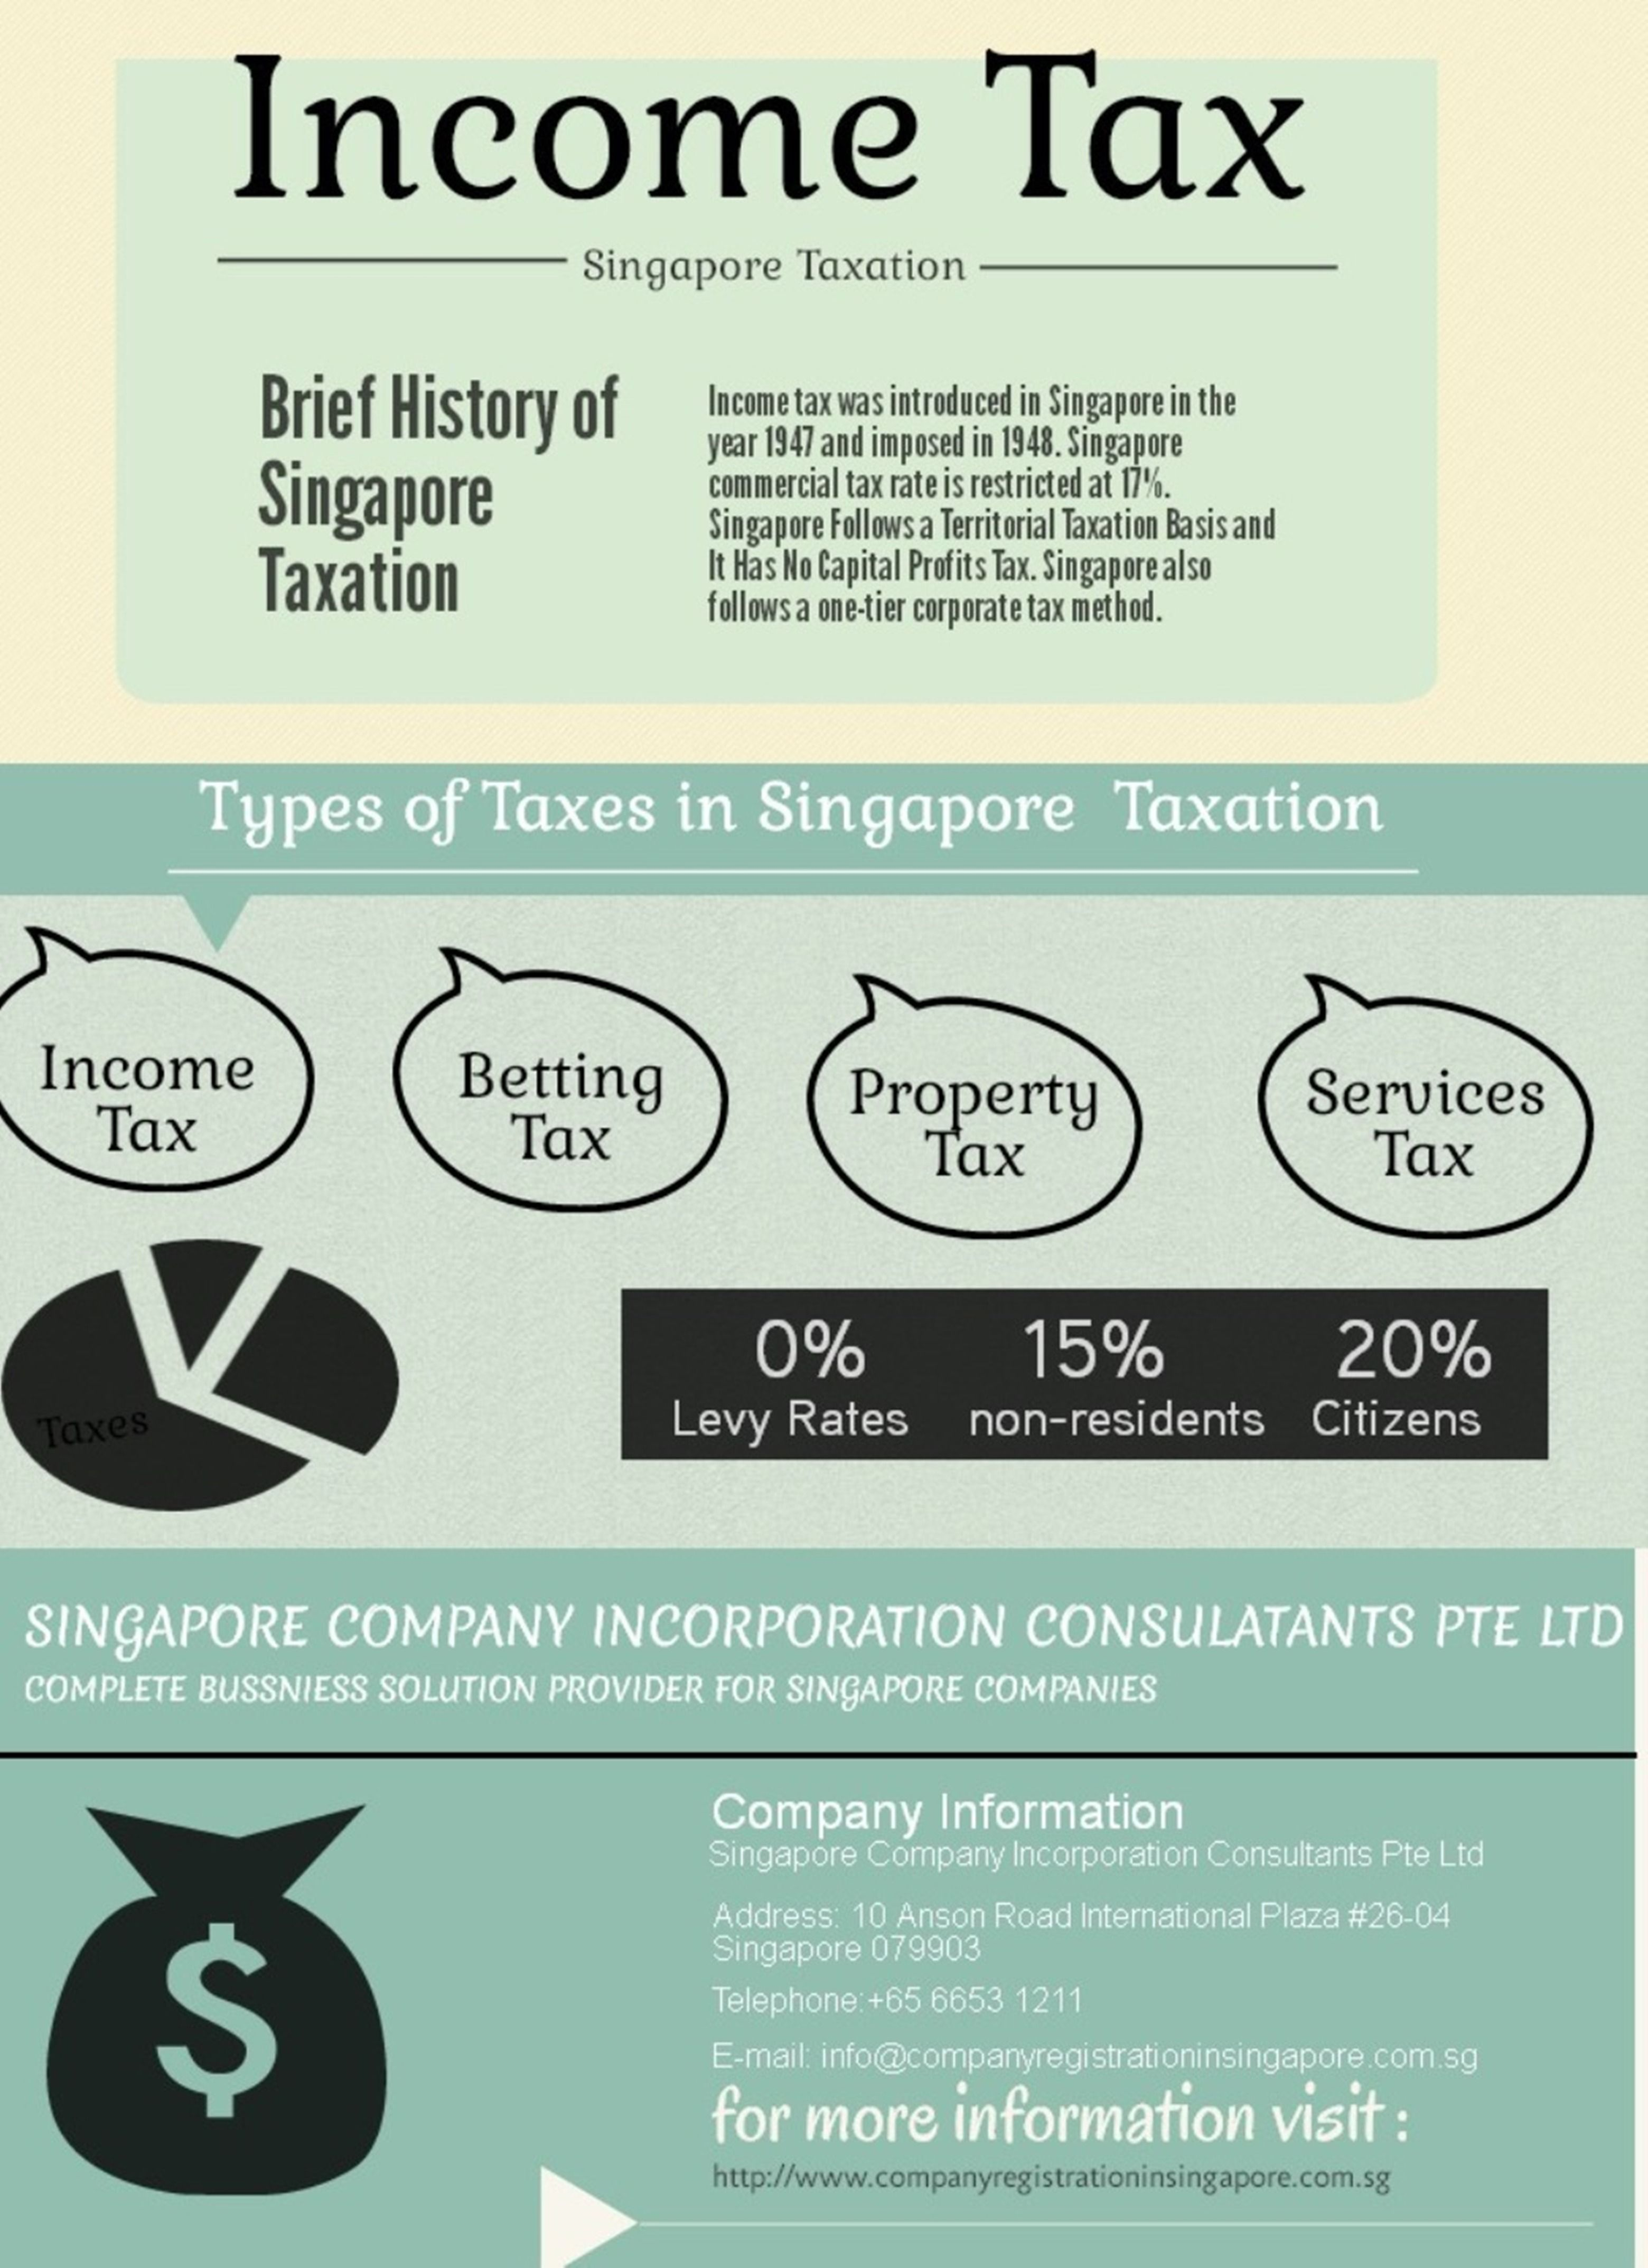 In Singapore The Rates Of Income Tax Are Very Less In The Whole